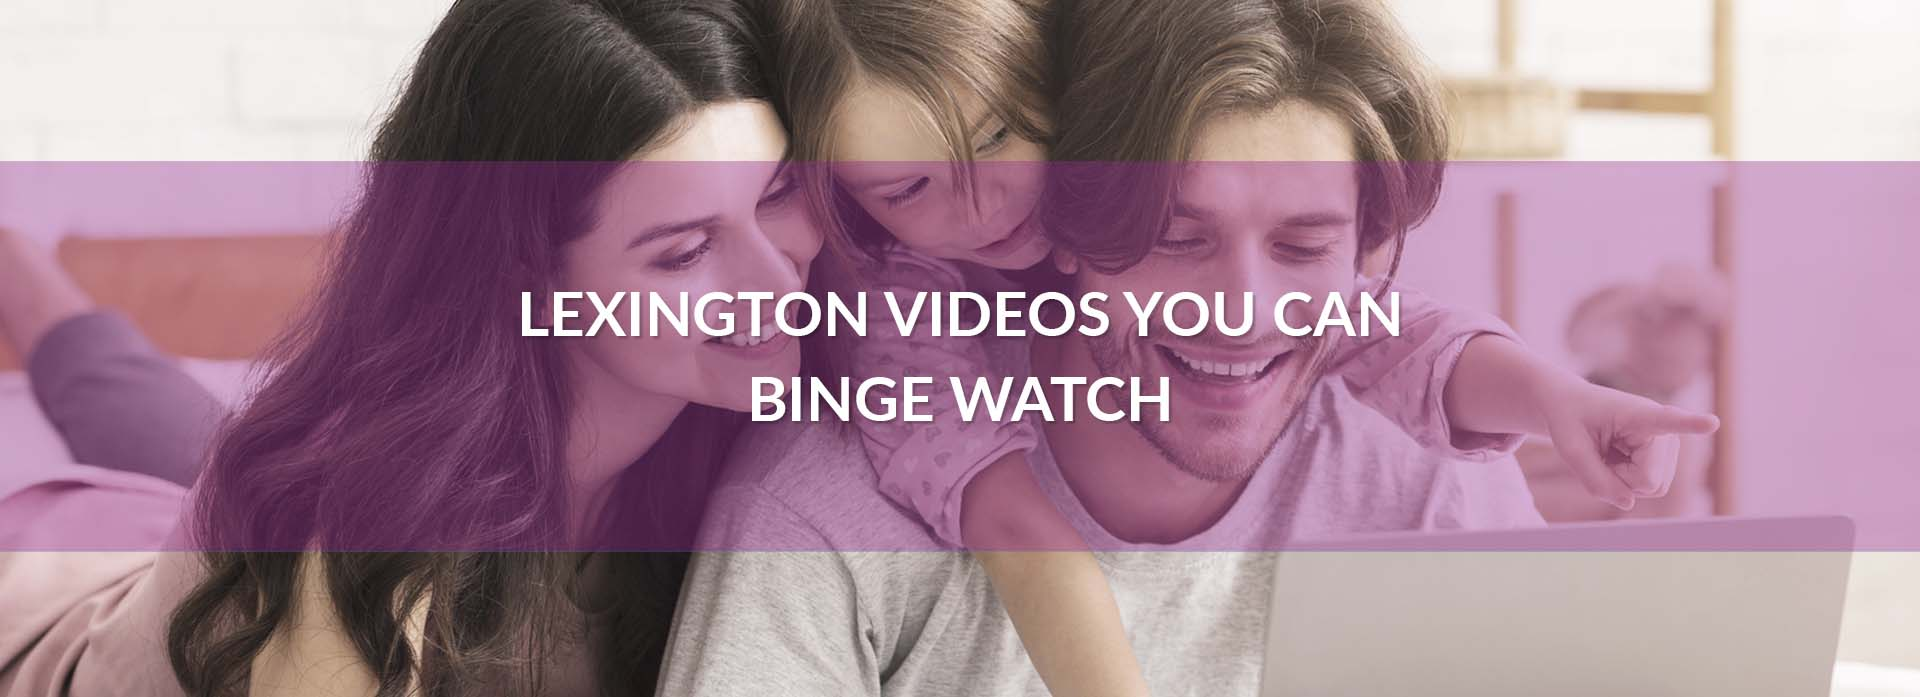 Lexington Videos You Can Binge Watch